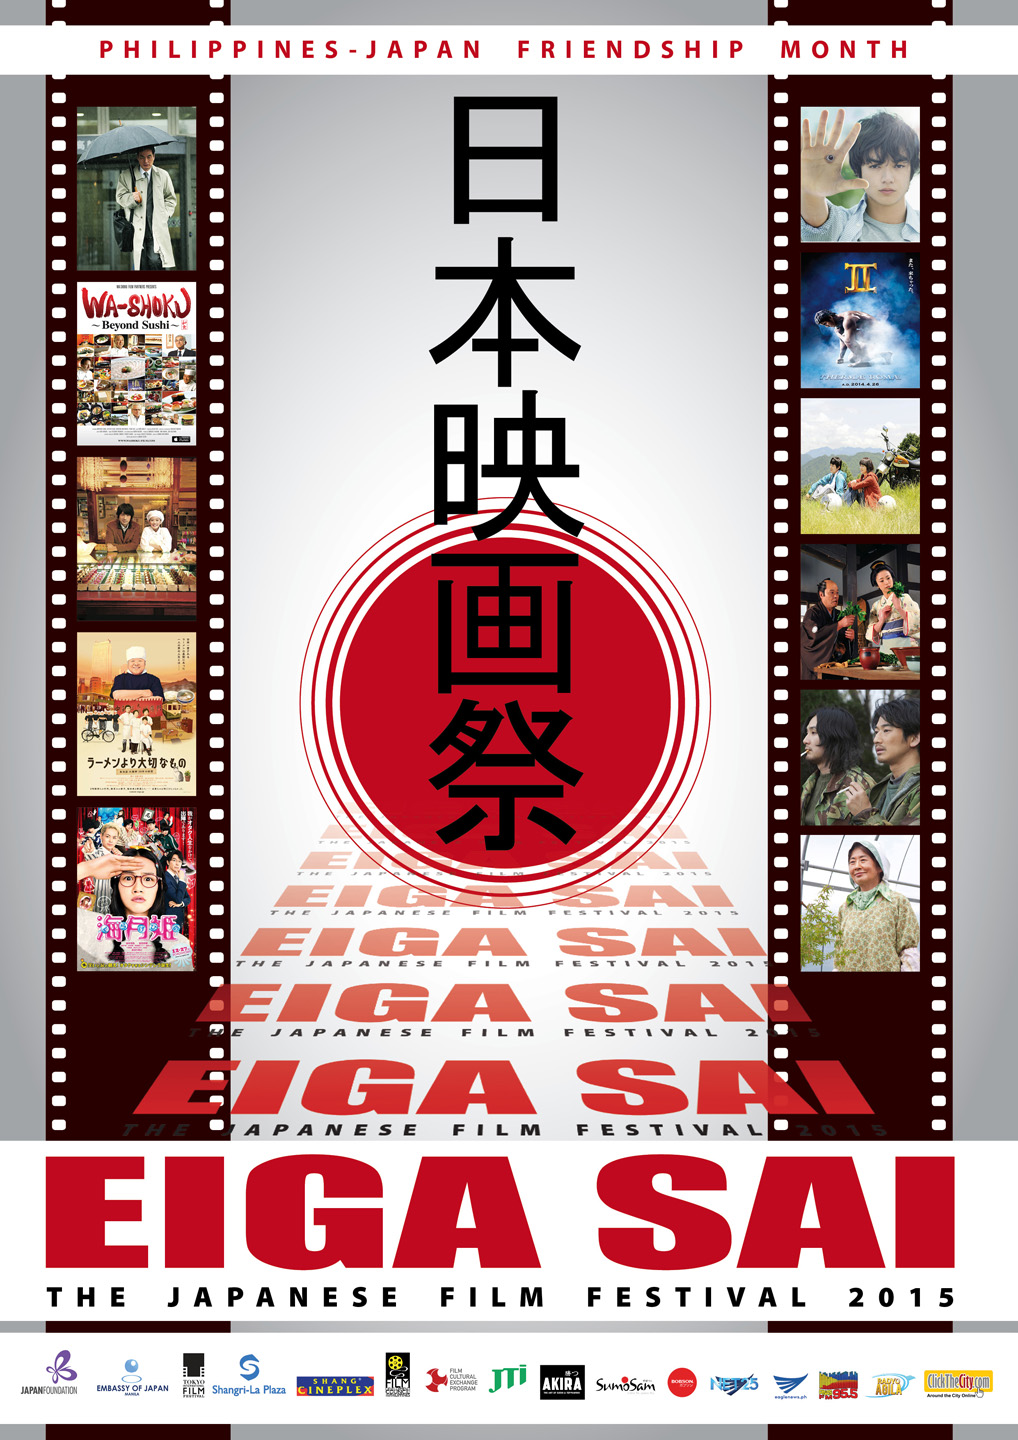 cd9eaff74623 Japanese cuisine themed films at the Eiga Sai 2015